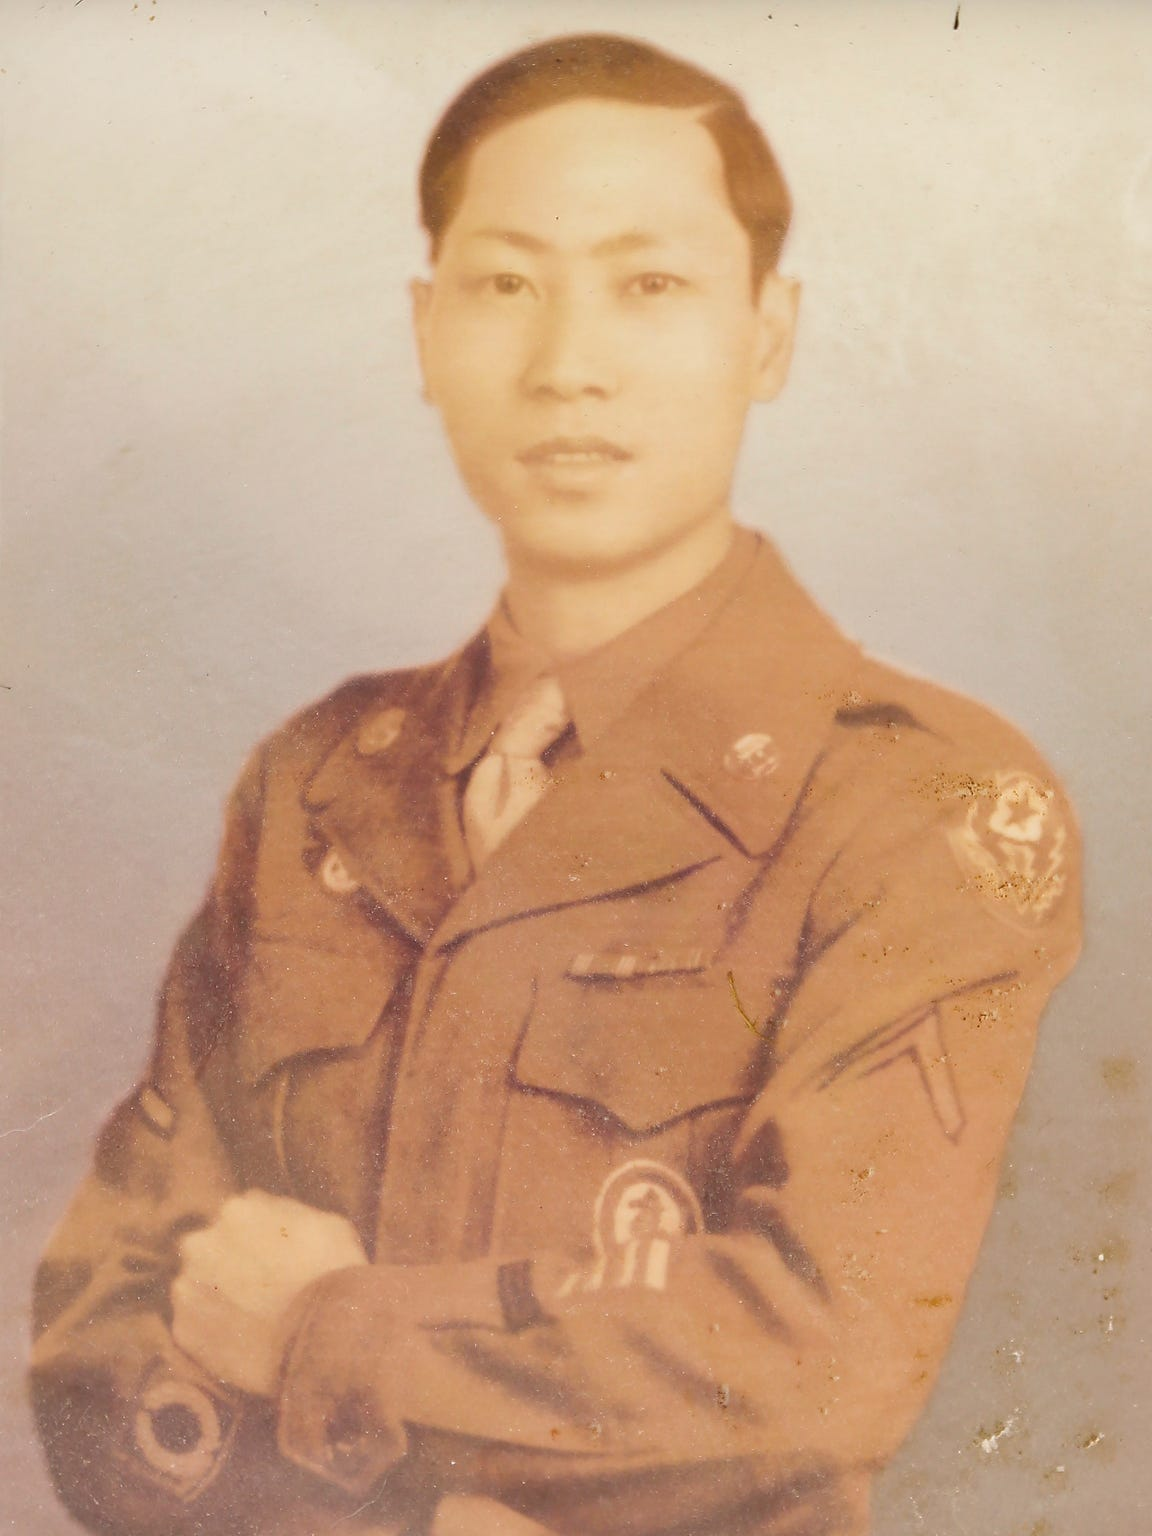 David Leong entered the U.S. Army in 1942 and was honorably discharged on Dec. 1, 1945.